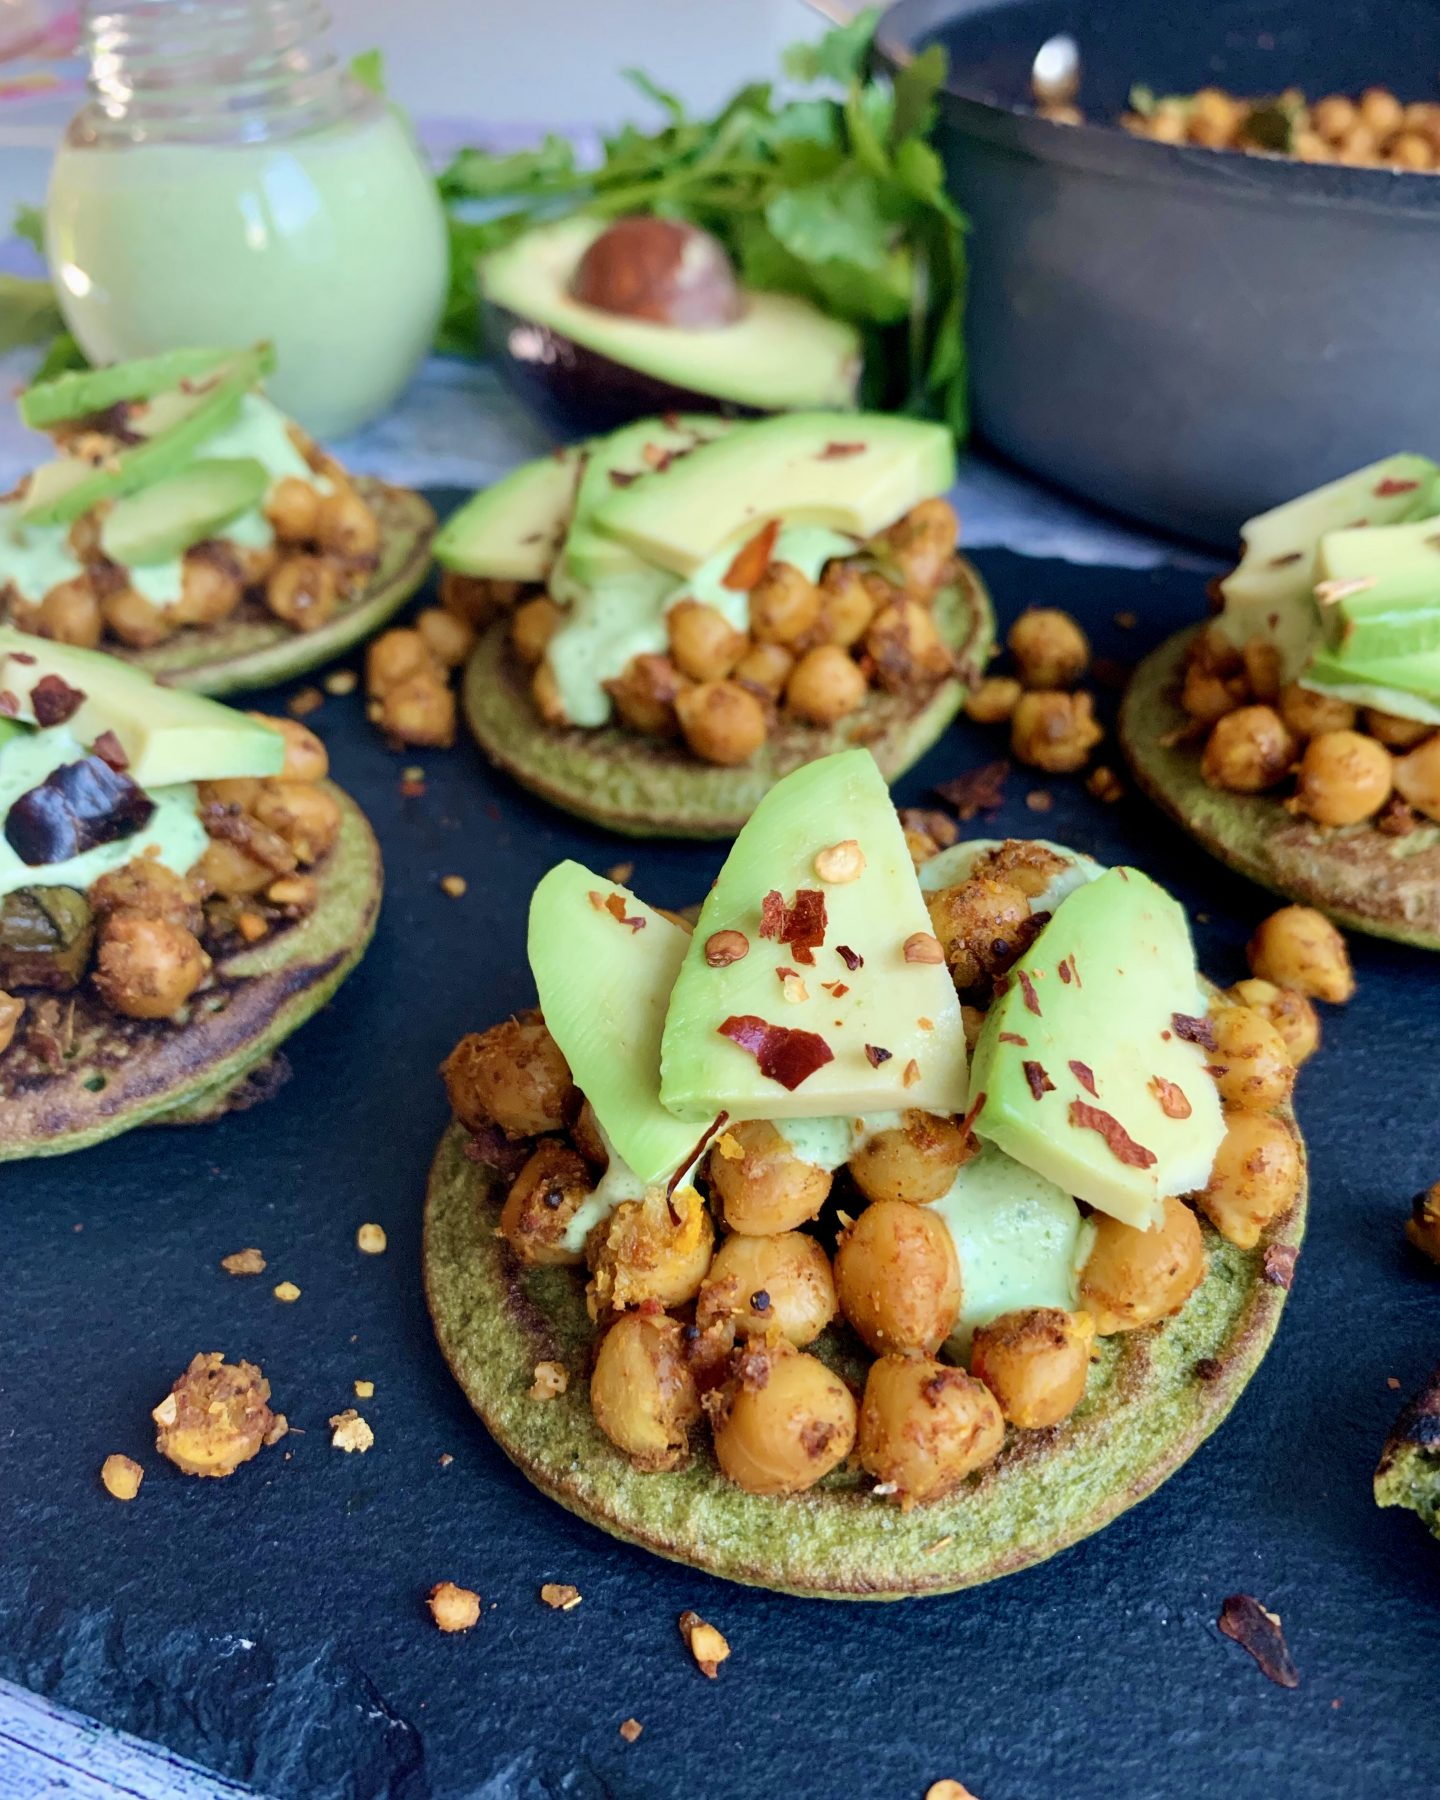 Spinach & Moong Flour Pancakes with Chickpeas, Avocado & Mint Sauce